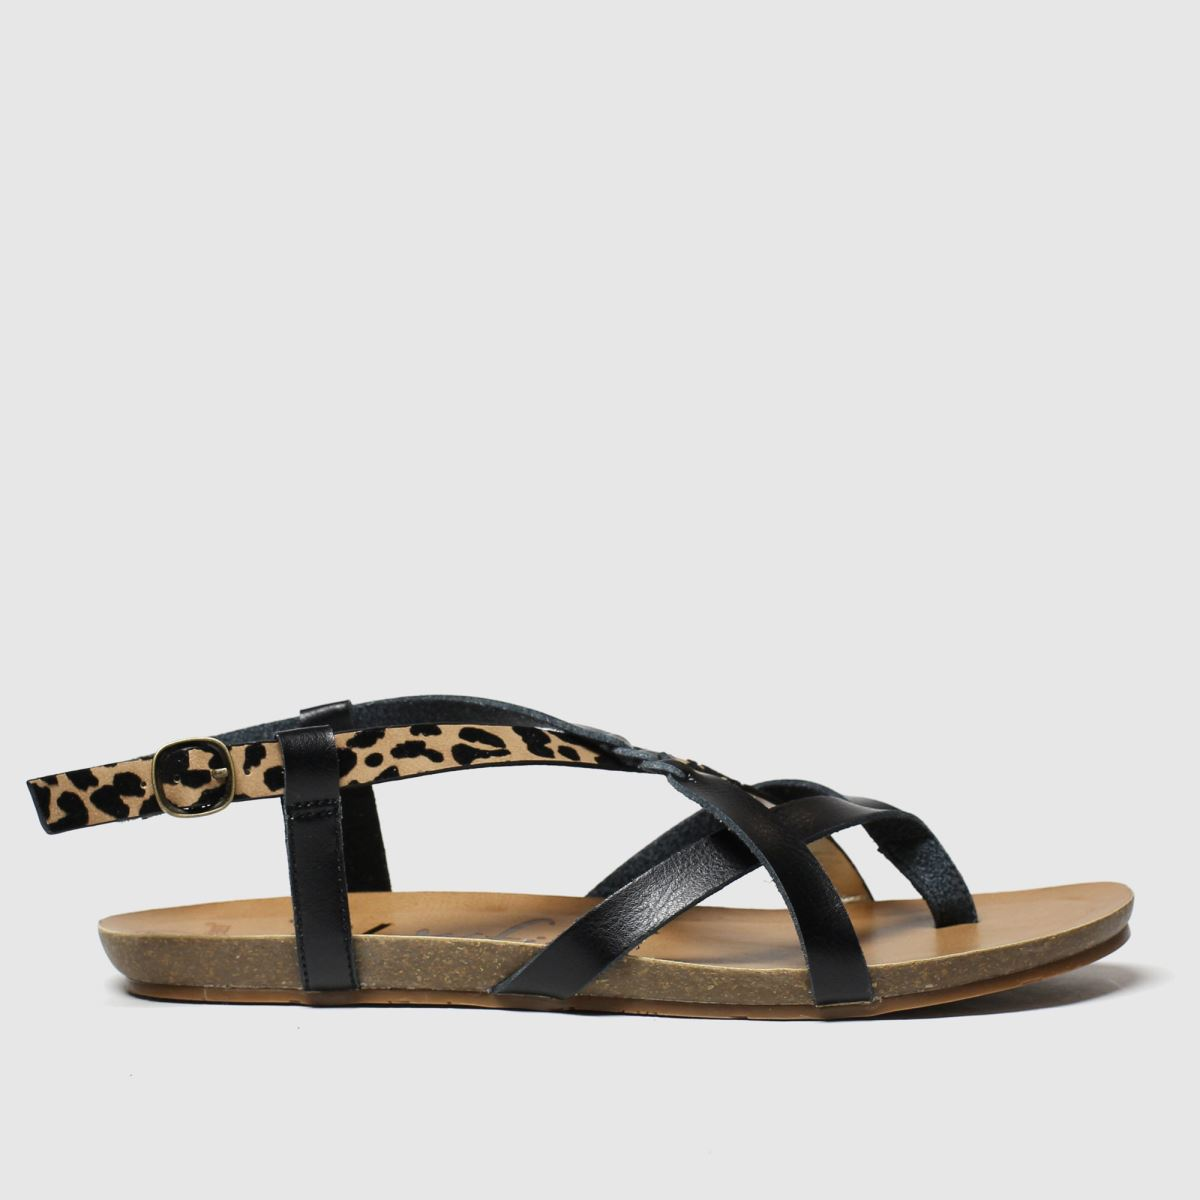 Blowfish Blowfish Black & Brown Granola B Vegan Sandals